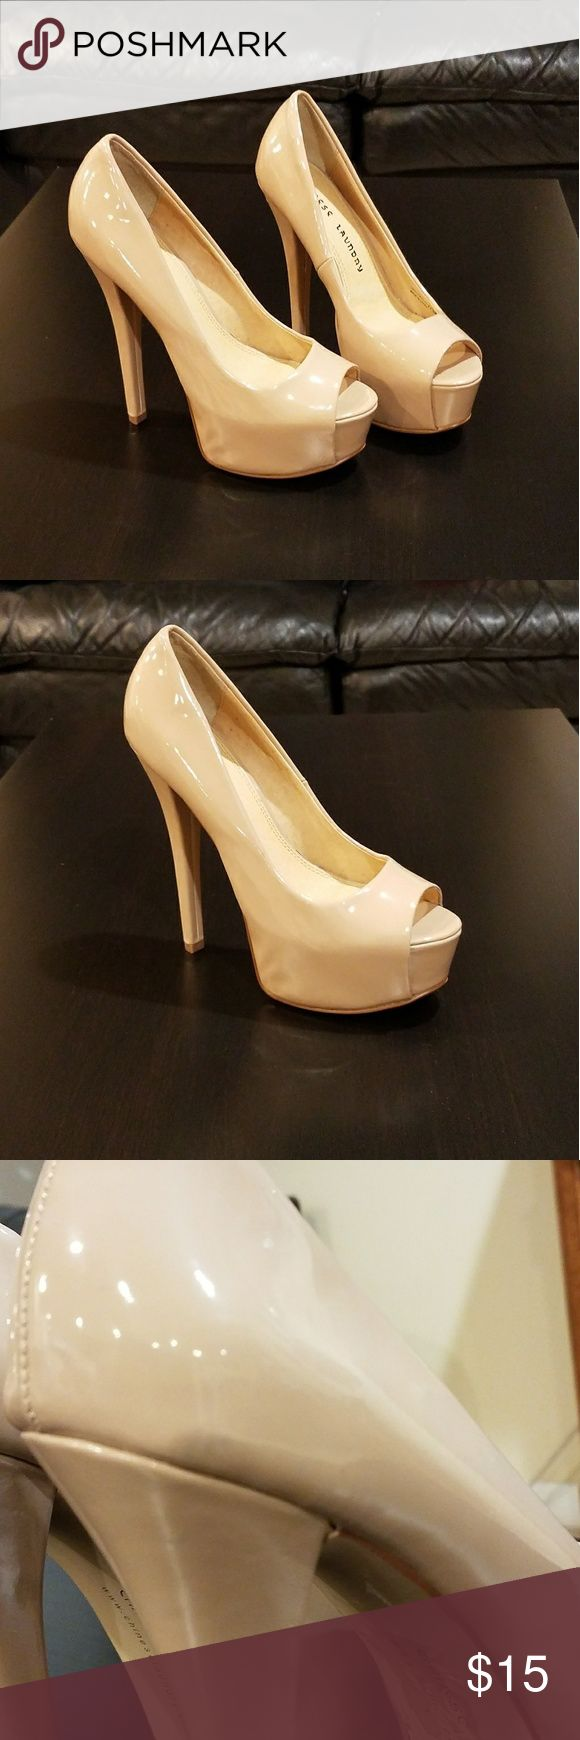 Nude Open Toe Heels Worn only once. Scuff mark shown in image 3. Otherwise, good condition. Chinese Laundry Shoes Heels